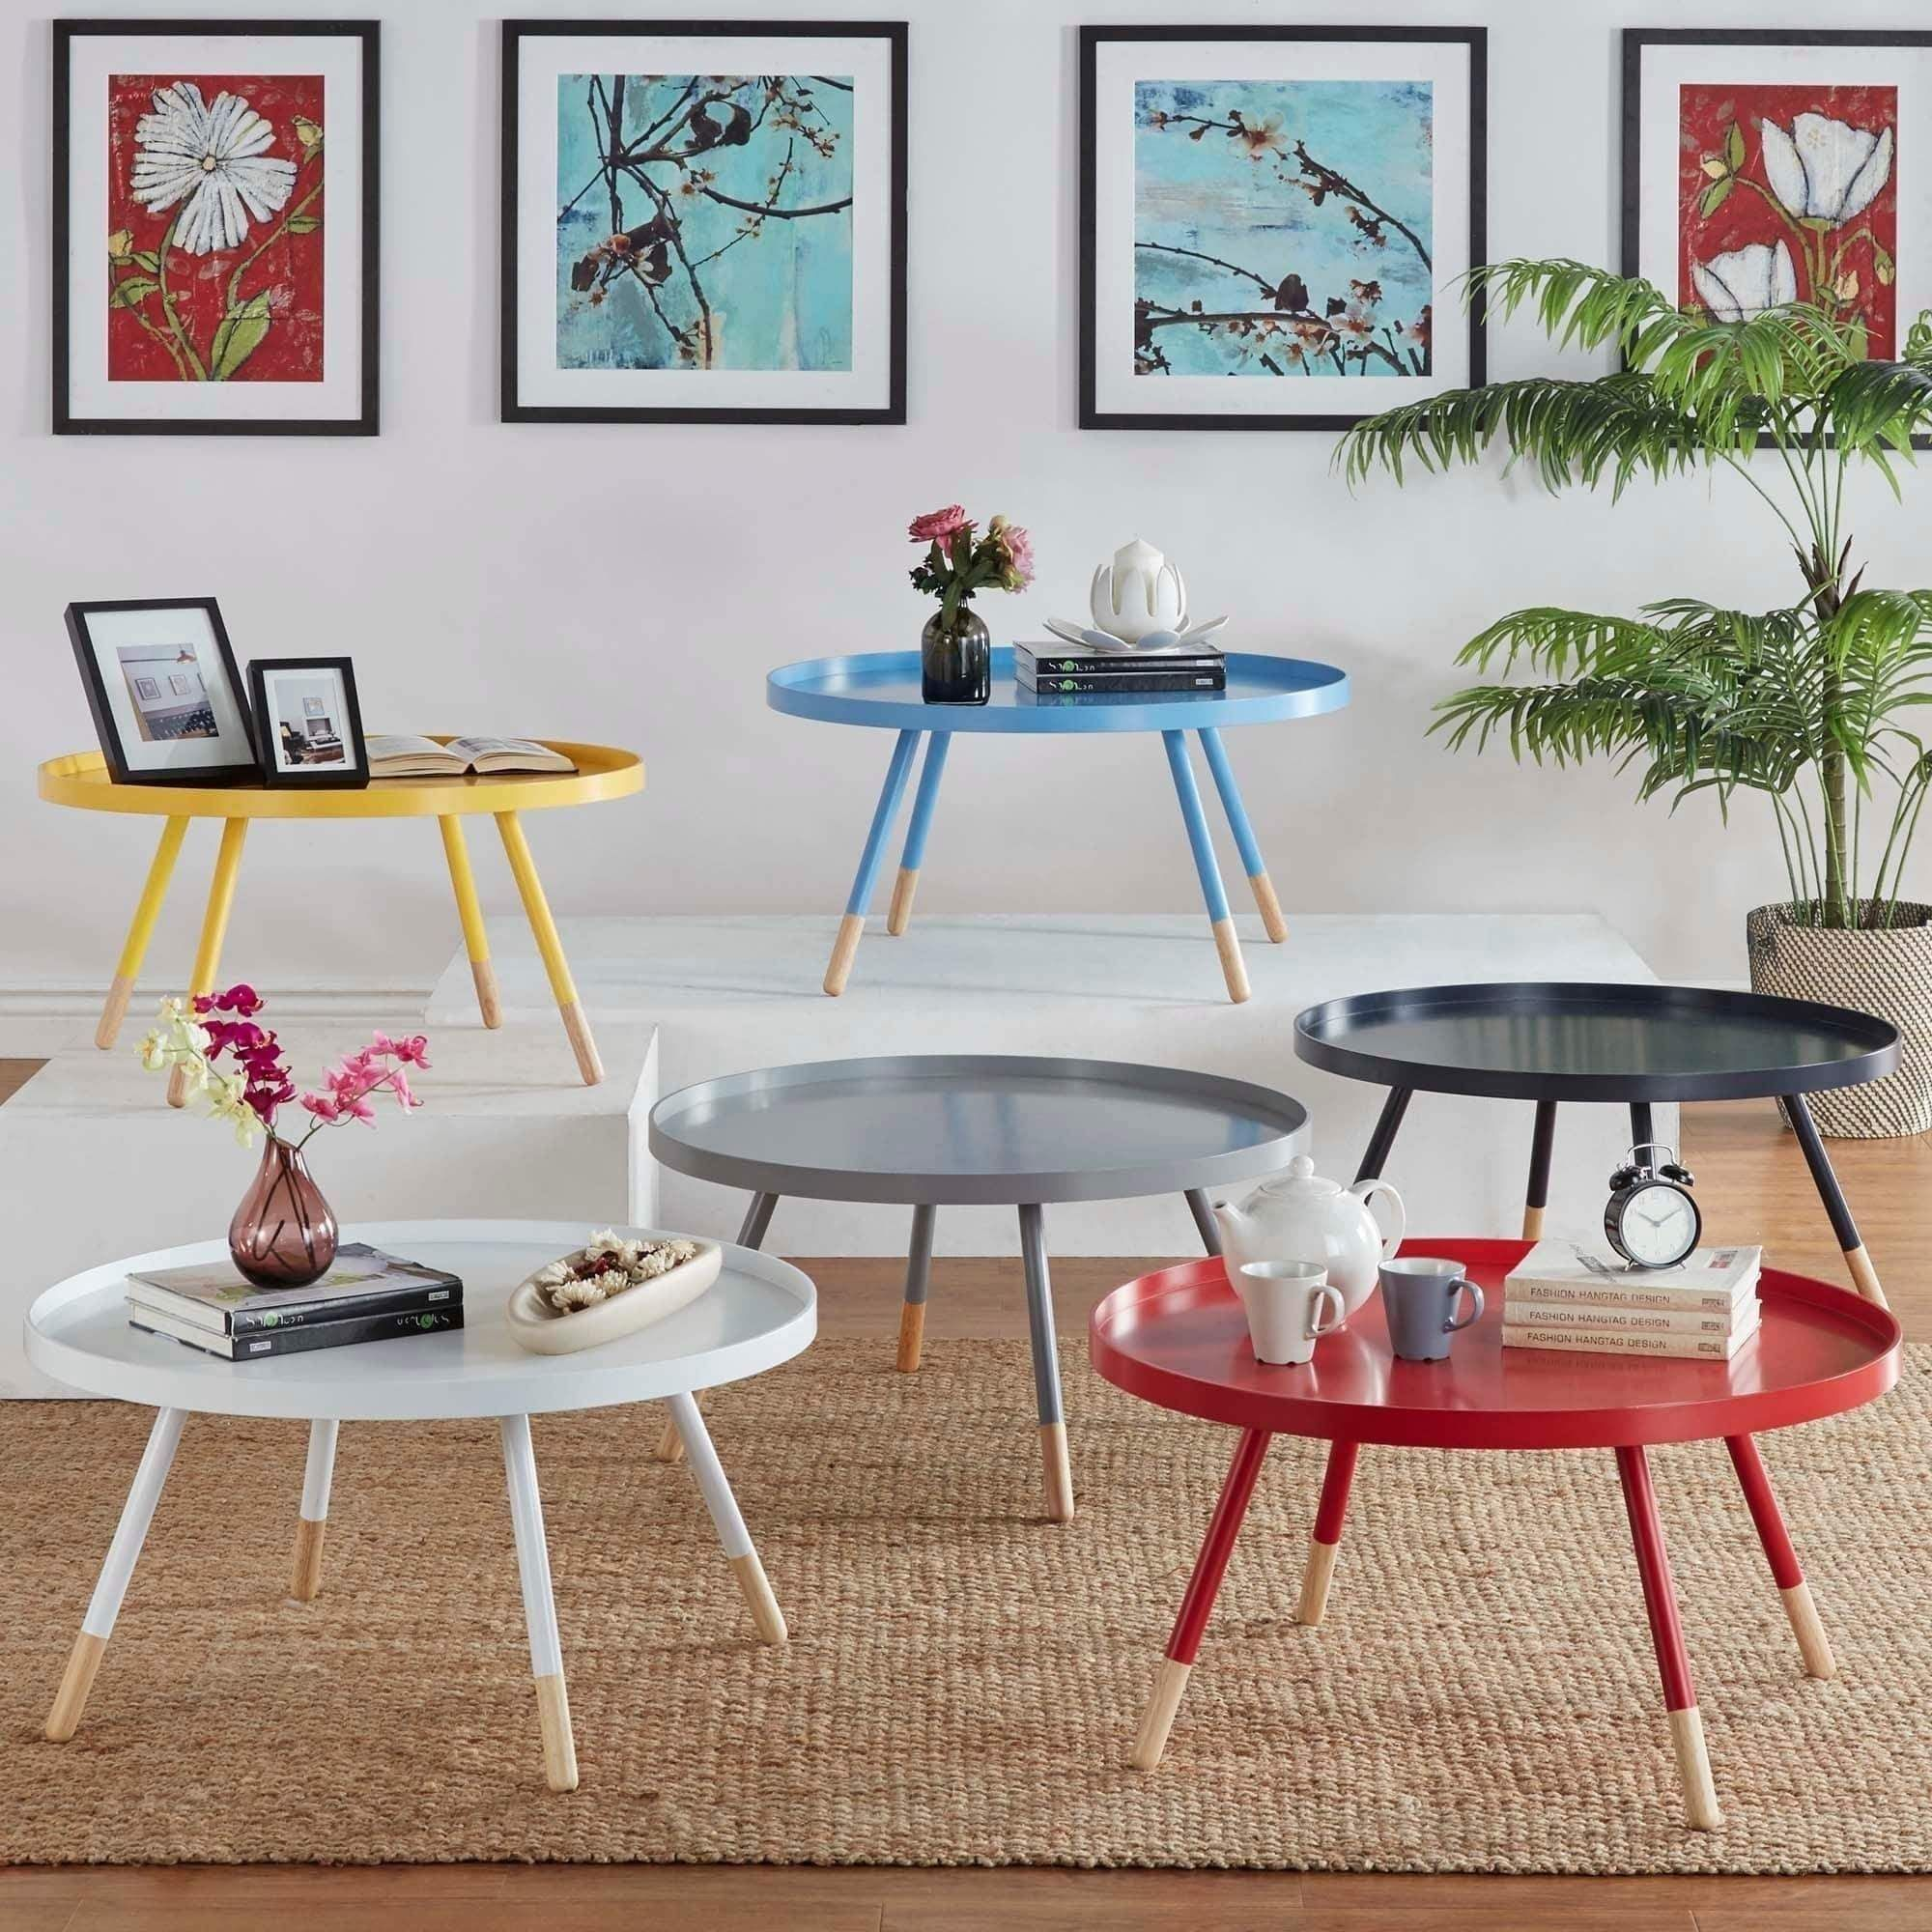 Paint-Dipped Round Spindle Tray Top Coffee Table   Sofa ...